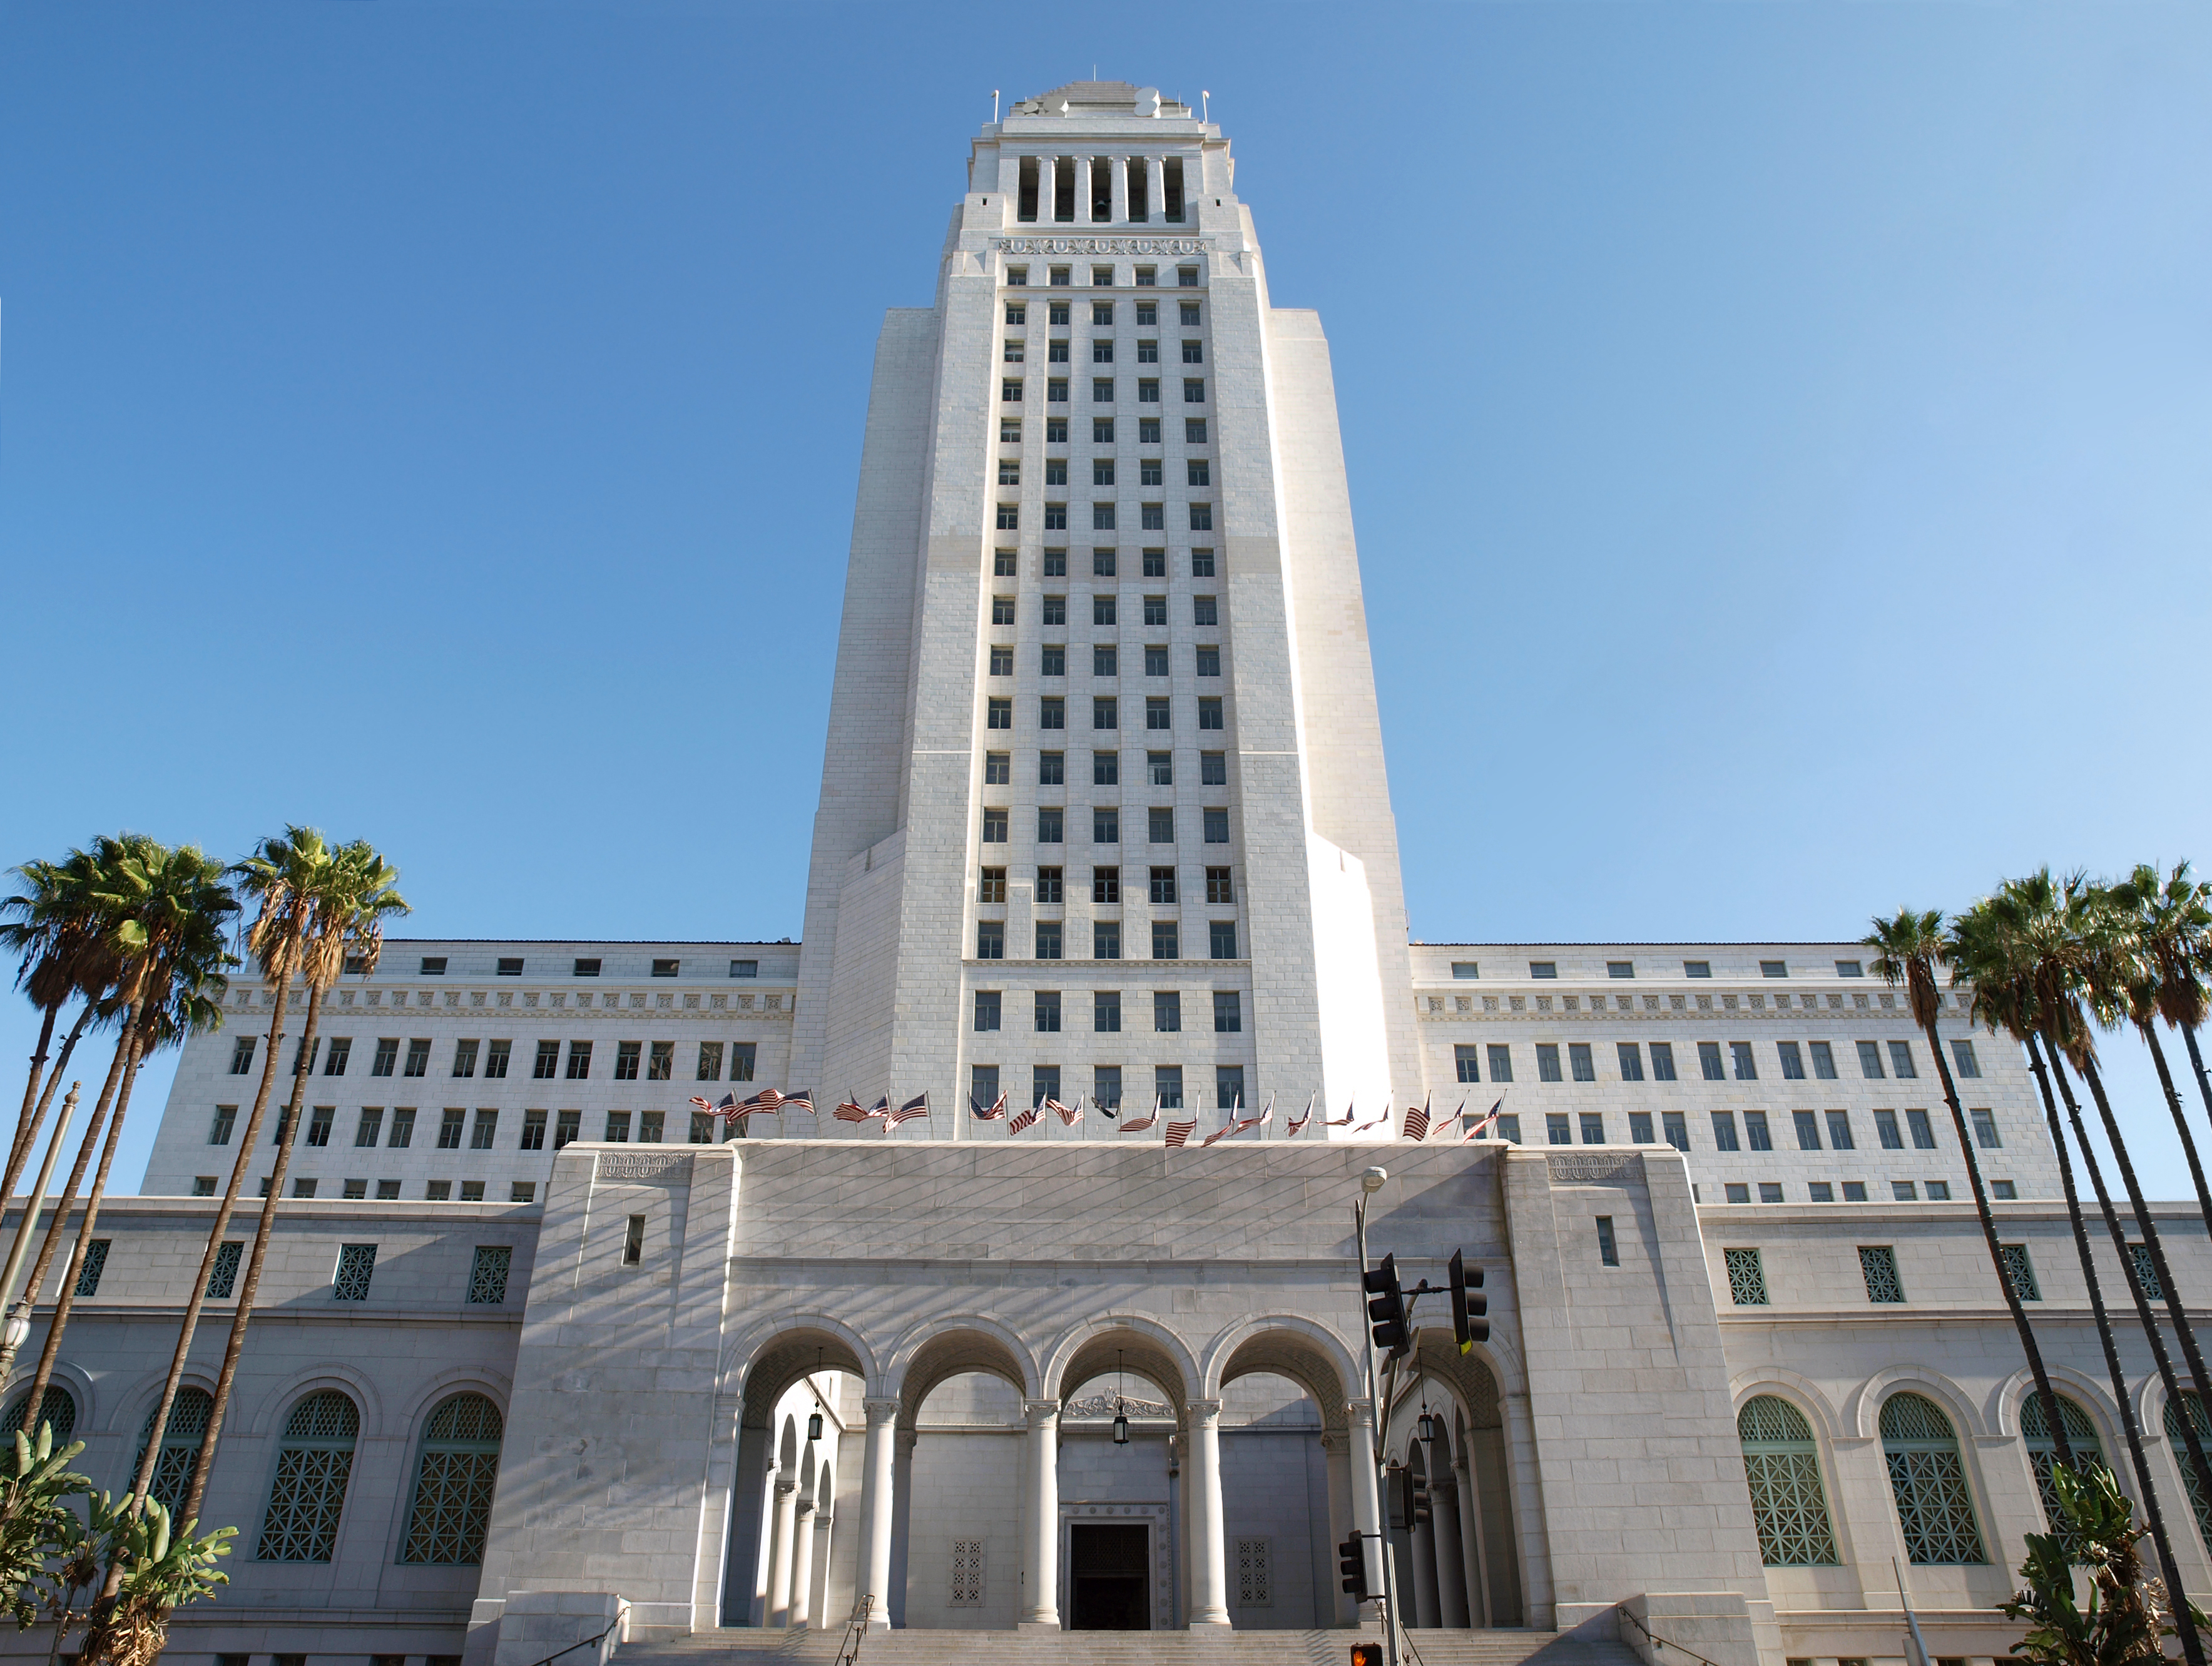 A white building with a tall tower. The front of the building has an arched entryway.